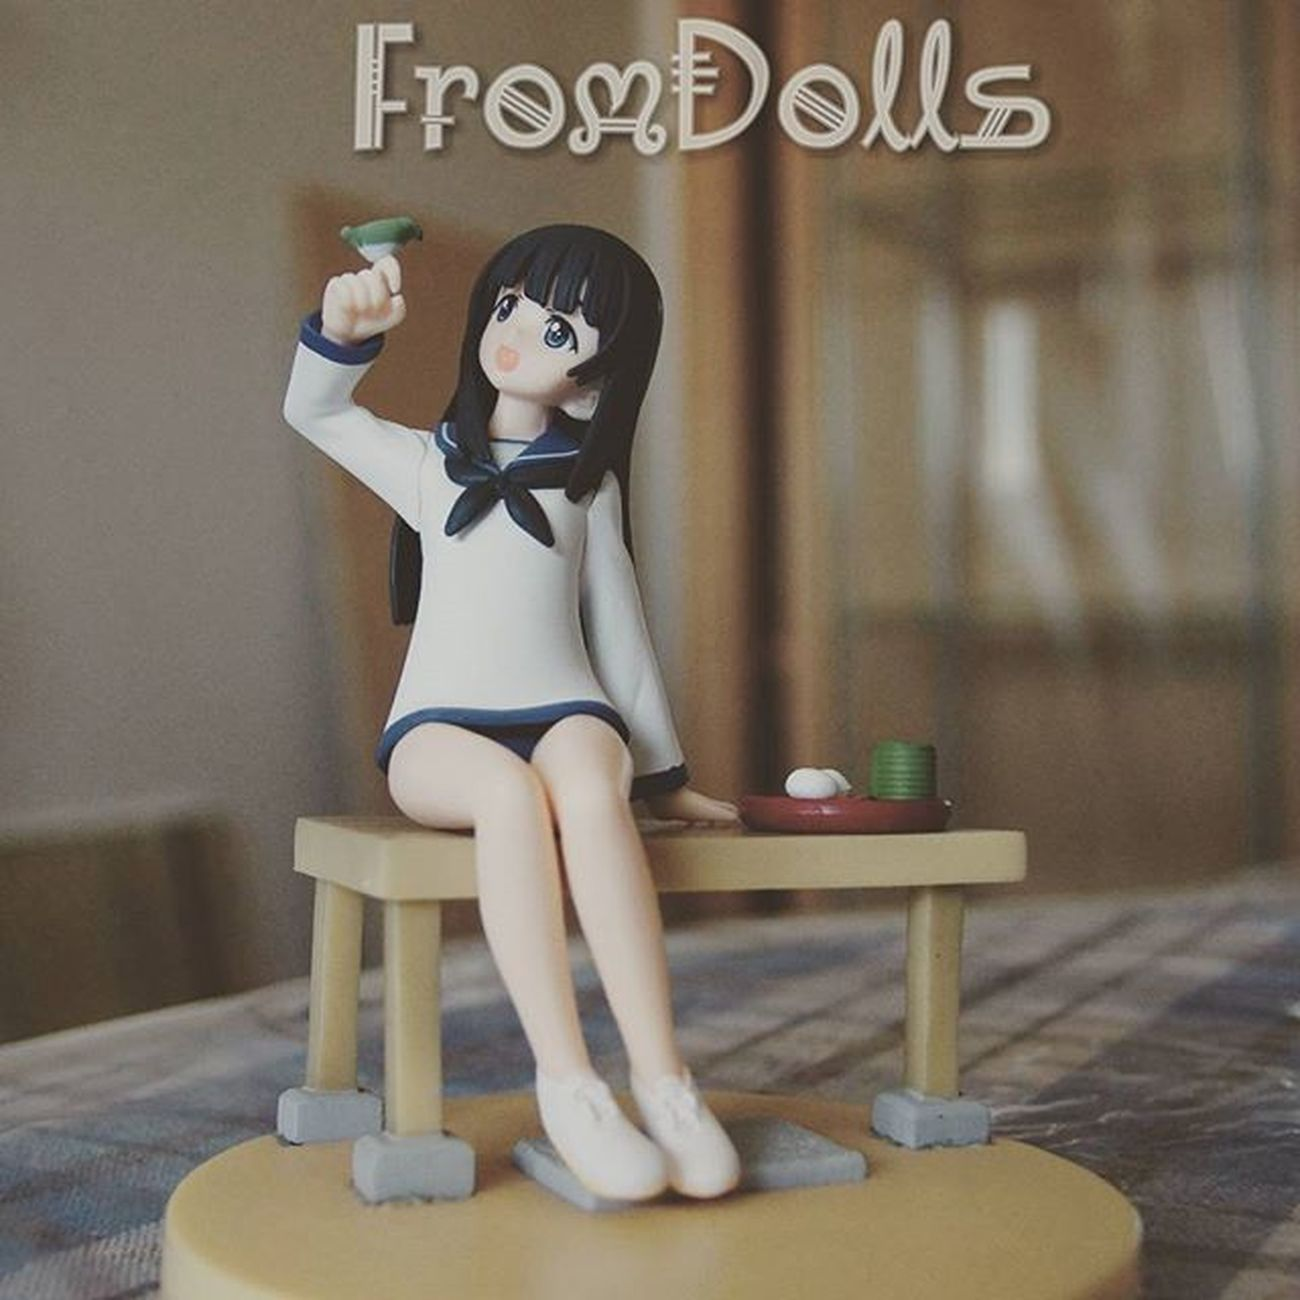 Fromdolls Anime Manga Mangagirl Bird Girl Figure